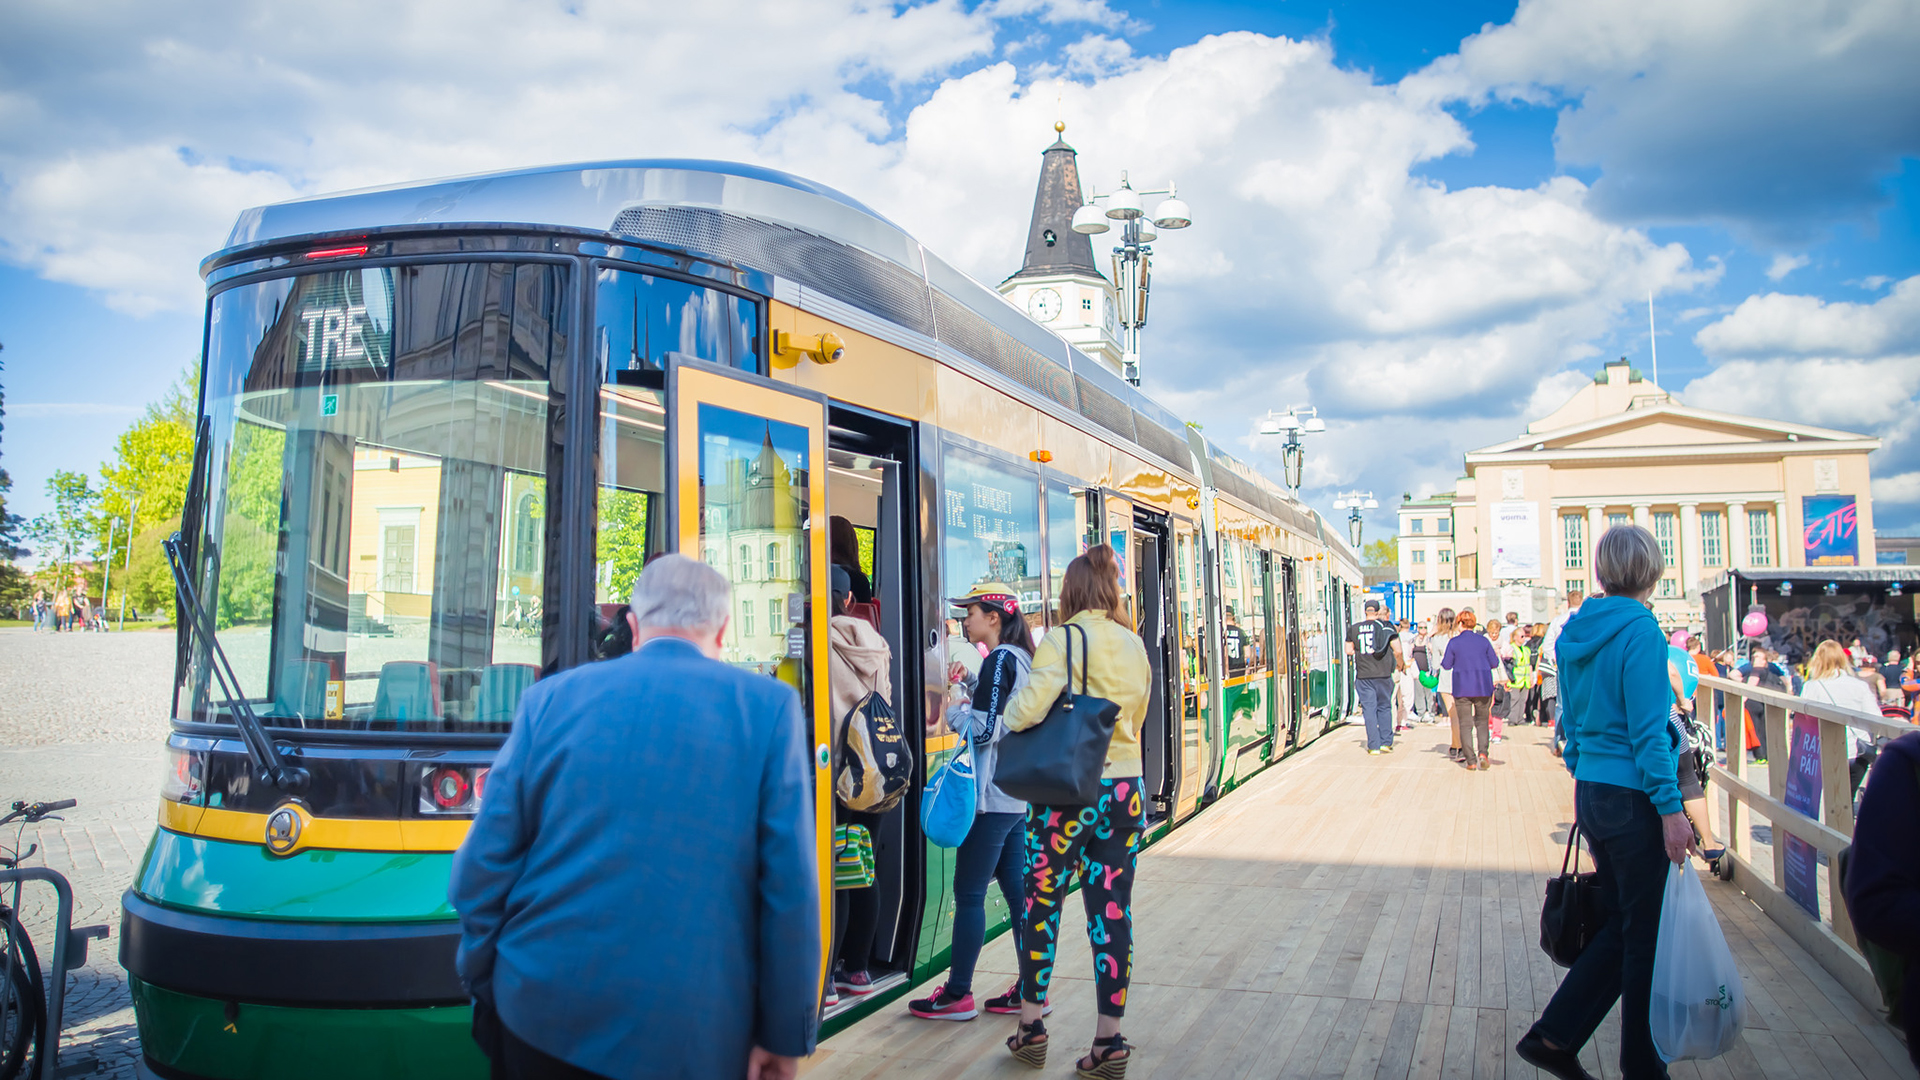 business tampere mobility liikkuminen tram